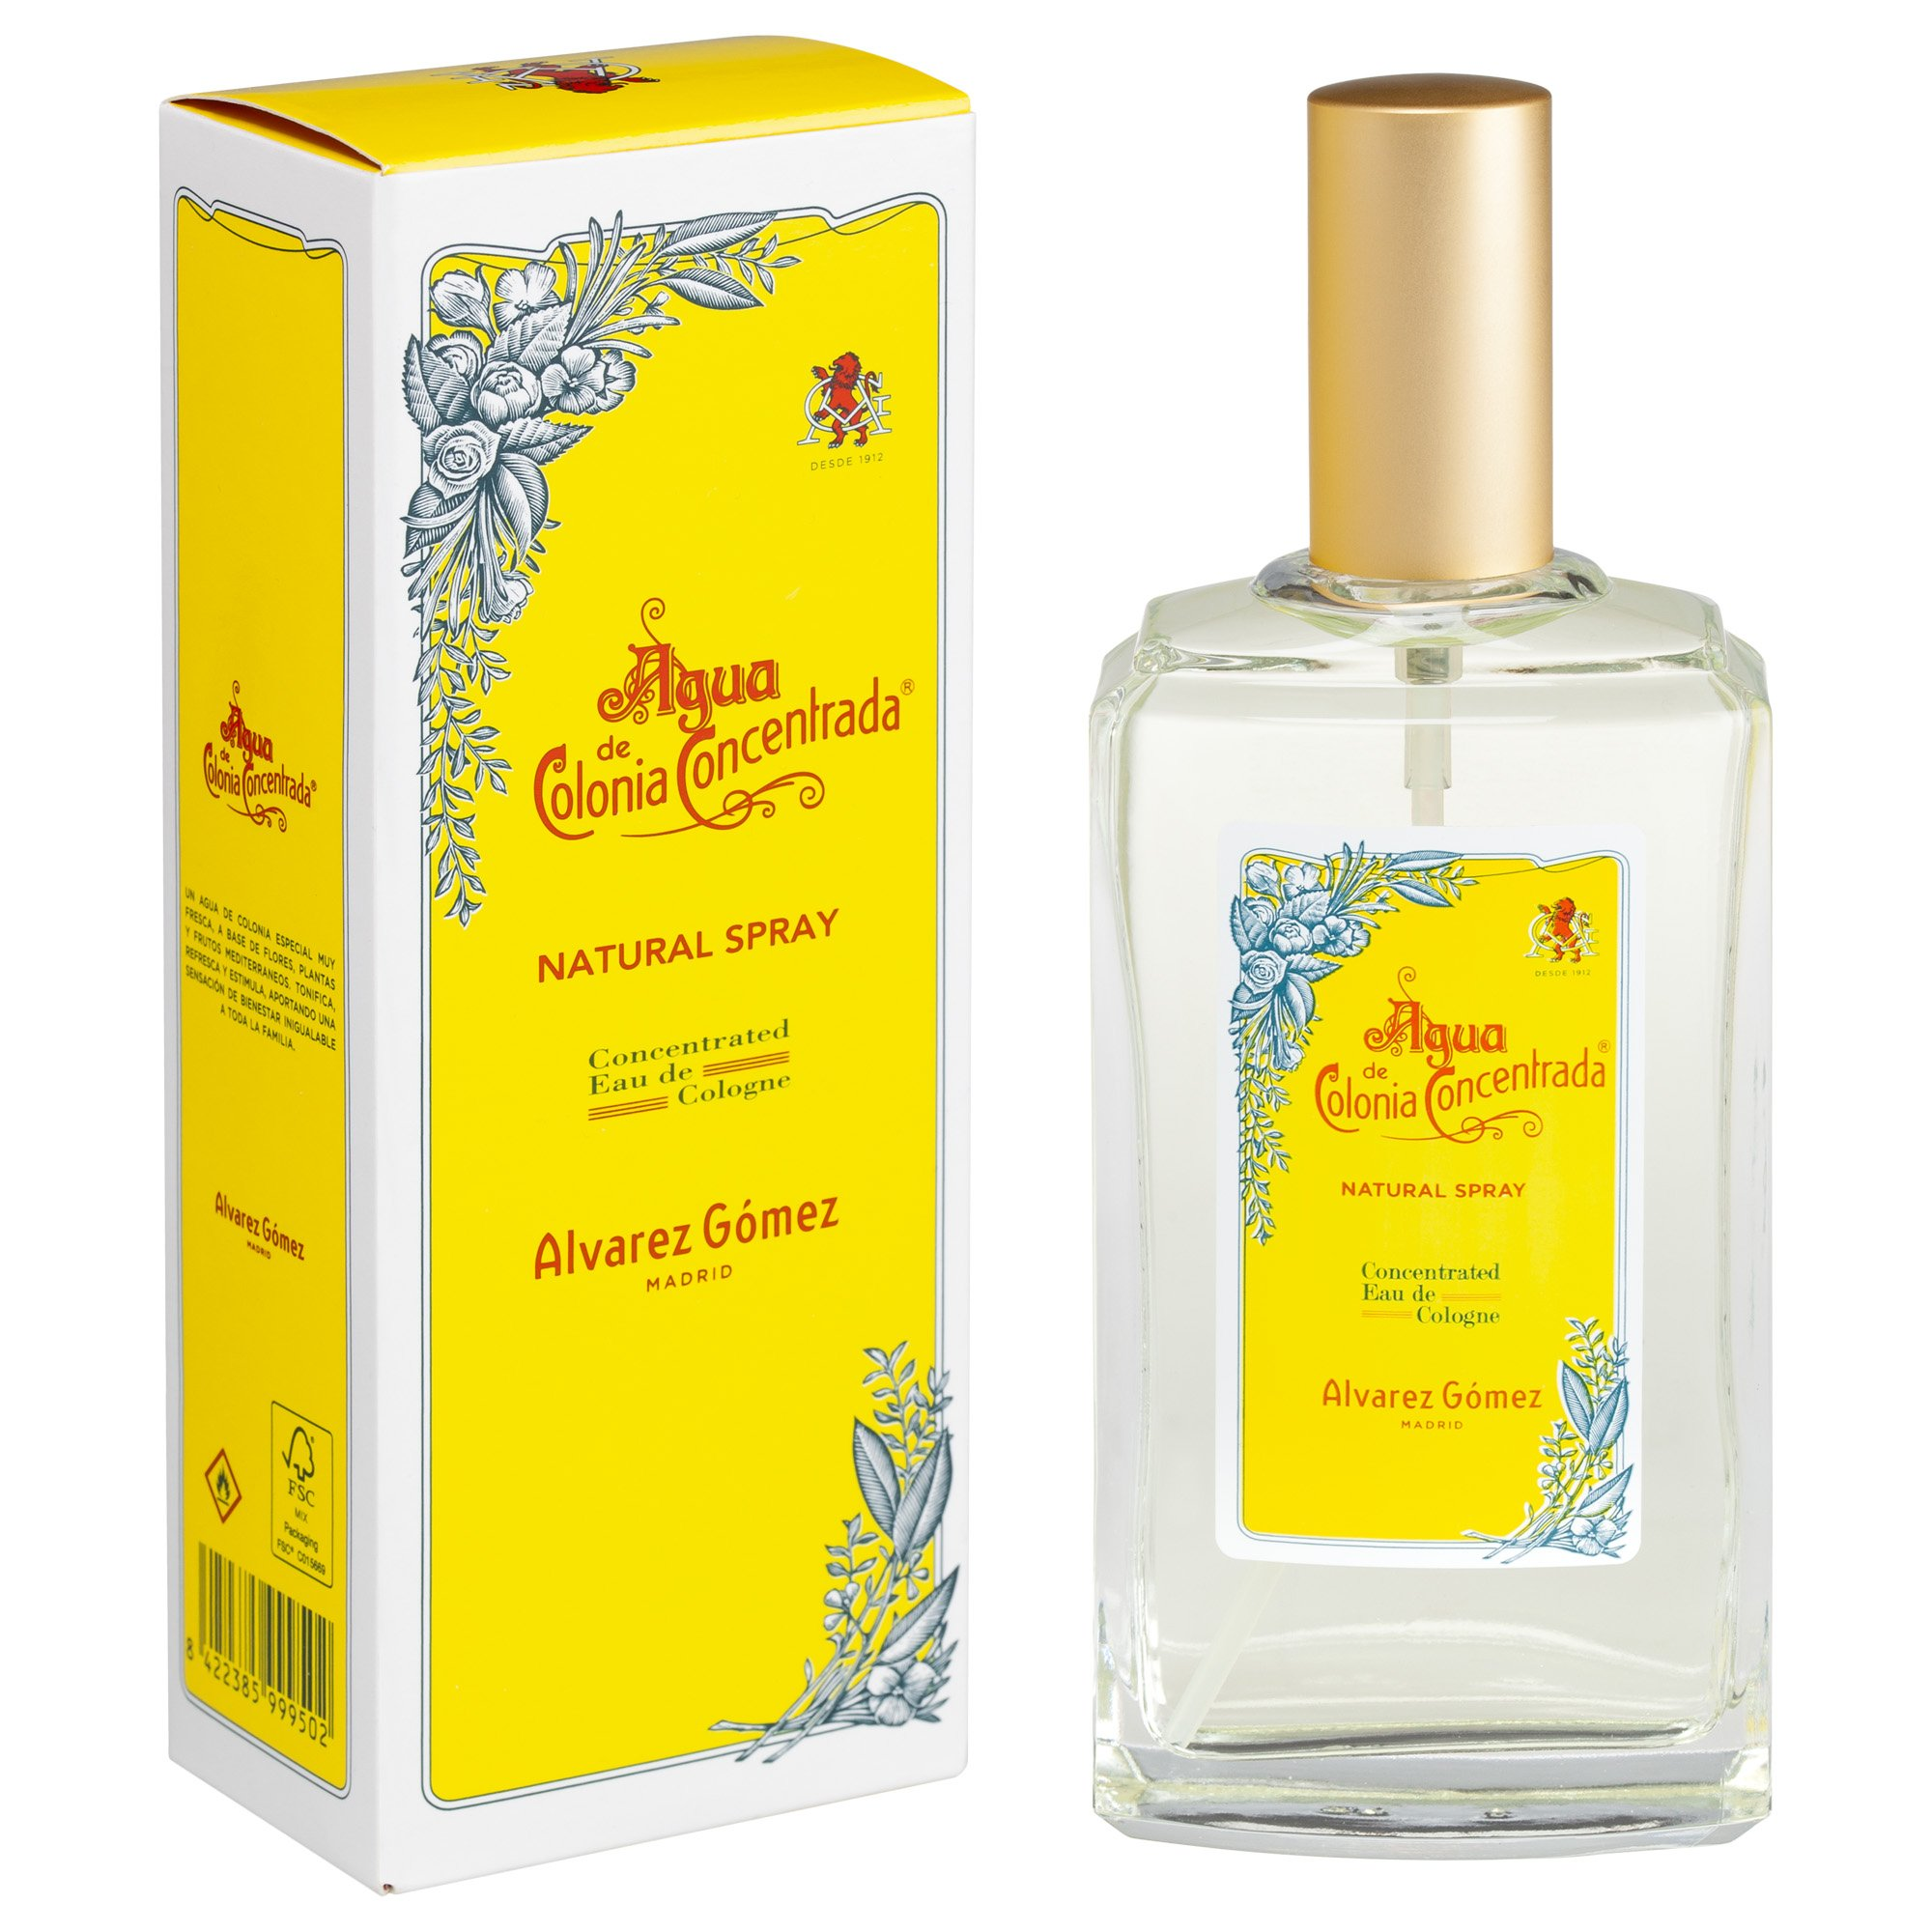 Alvarez Gomez - Agua de Colonia Rellenable en Spray - 150 ml product image